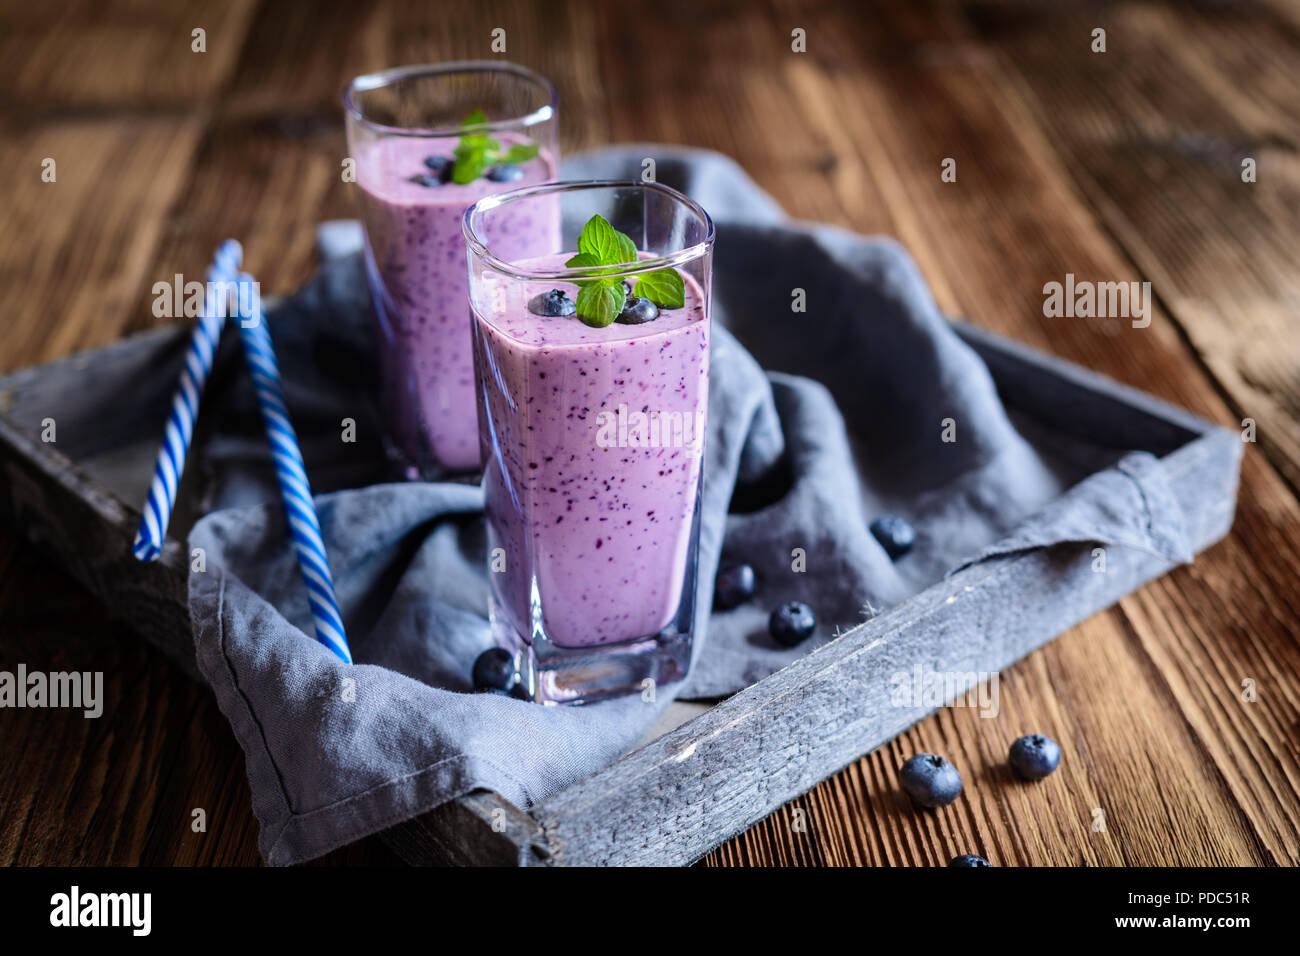 Healthy blueberry milkshake in glass jars - Stock Image